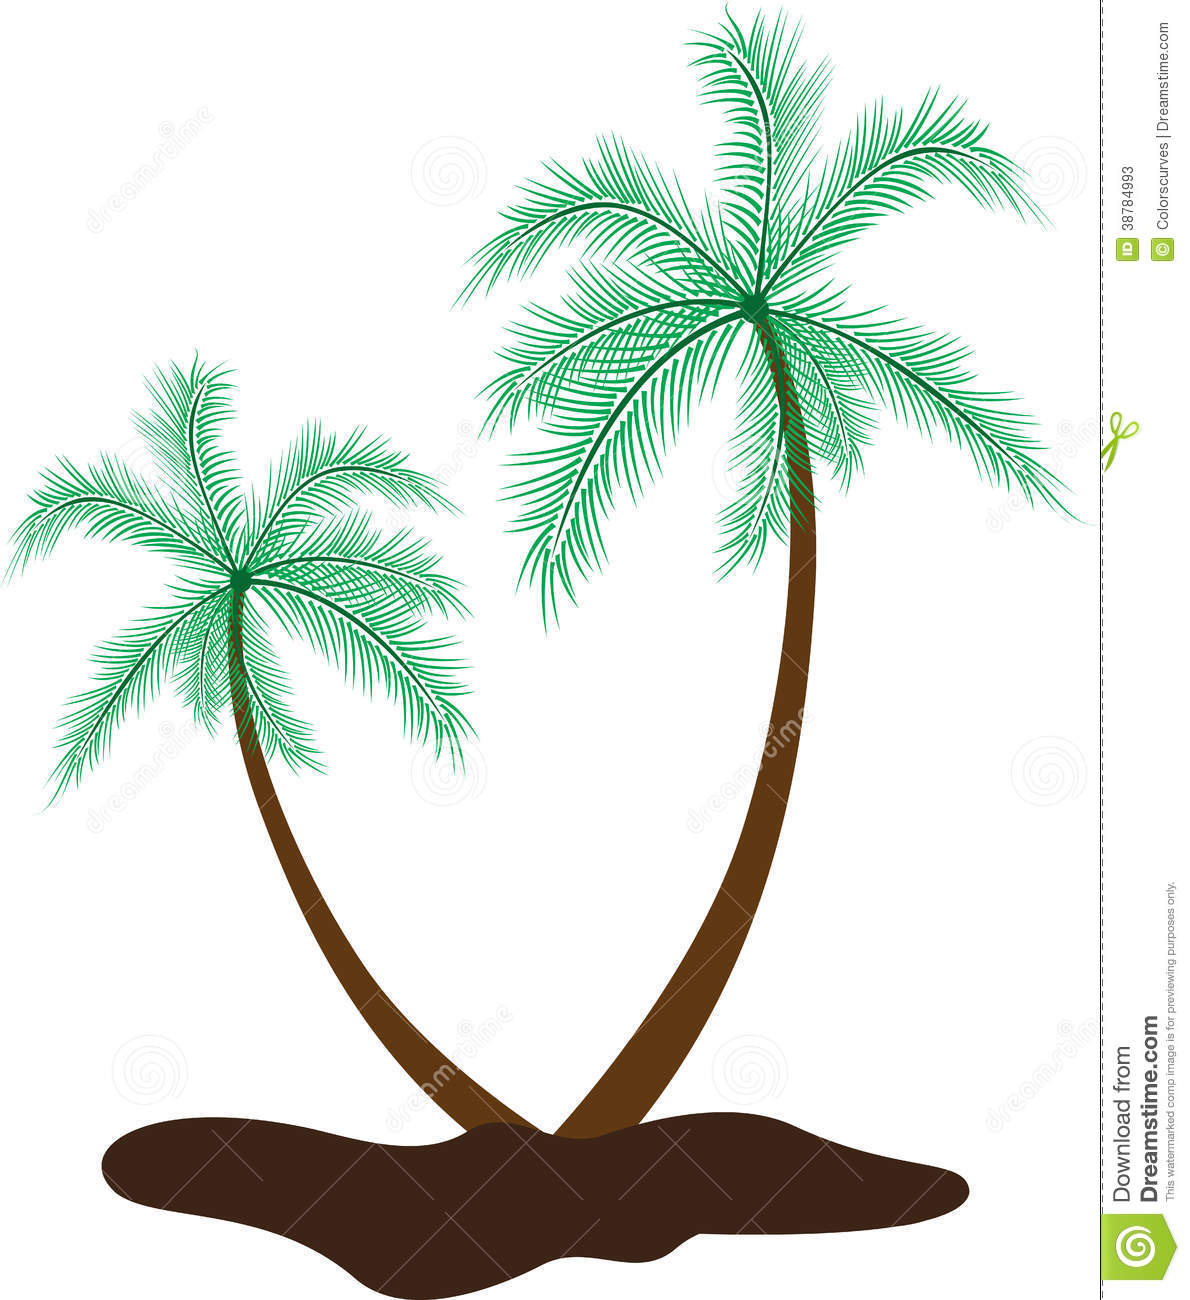 Coconut tree stock vector. Illustration of island, green ...